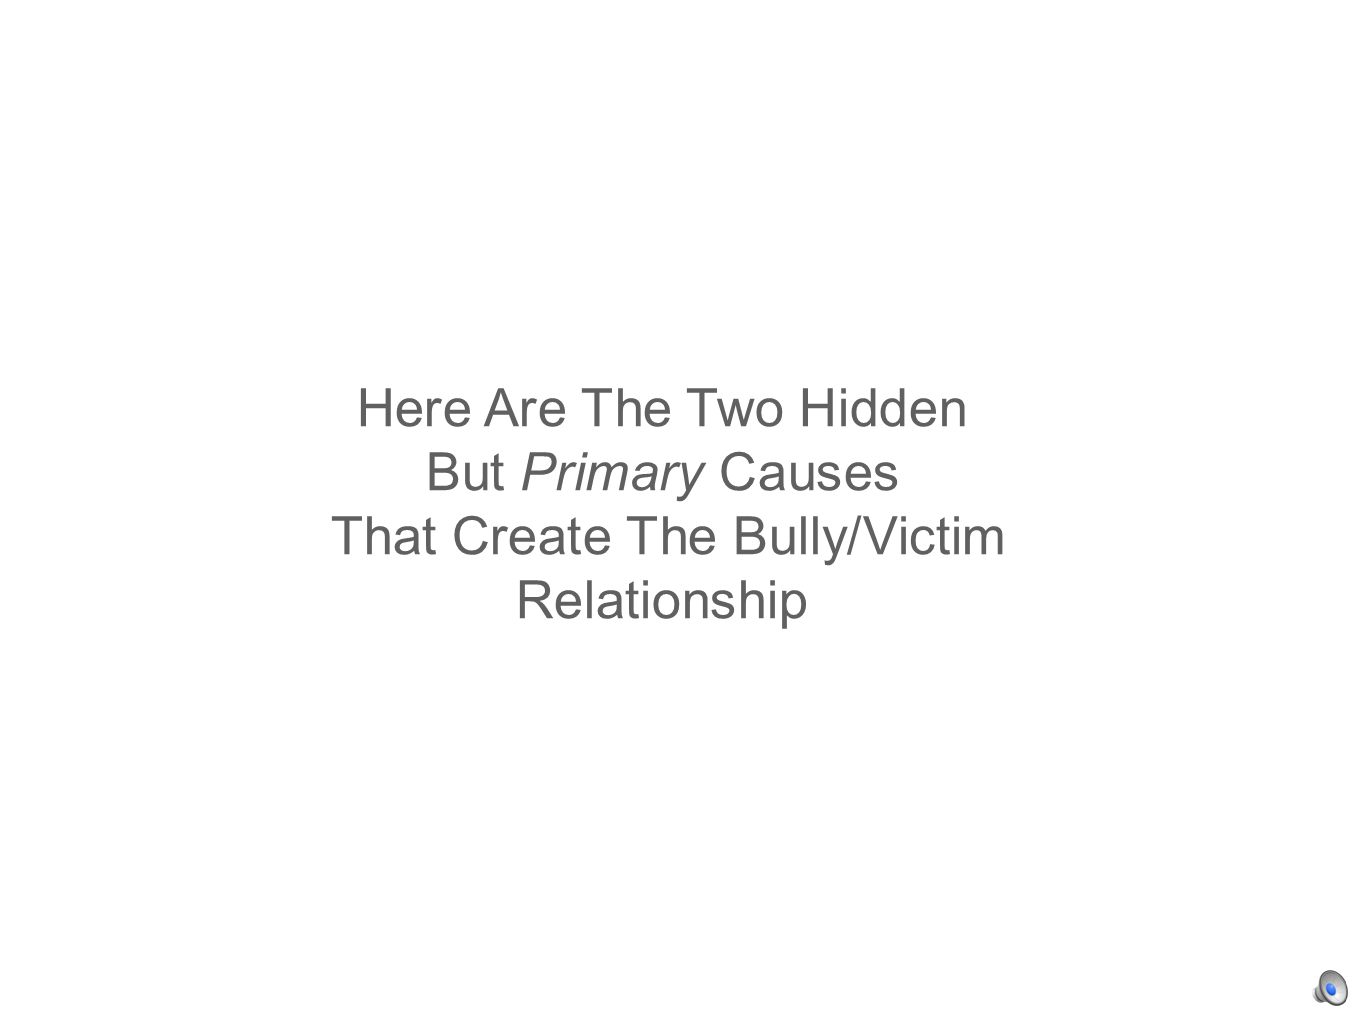 Here Are The Two Hidden But Primary Causes That Create The Bully/Victim Relationship